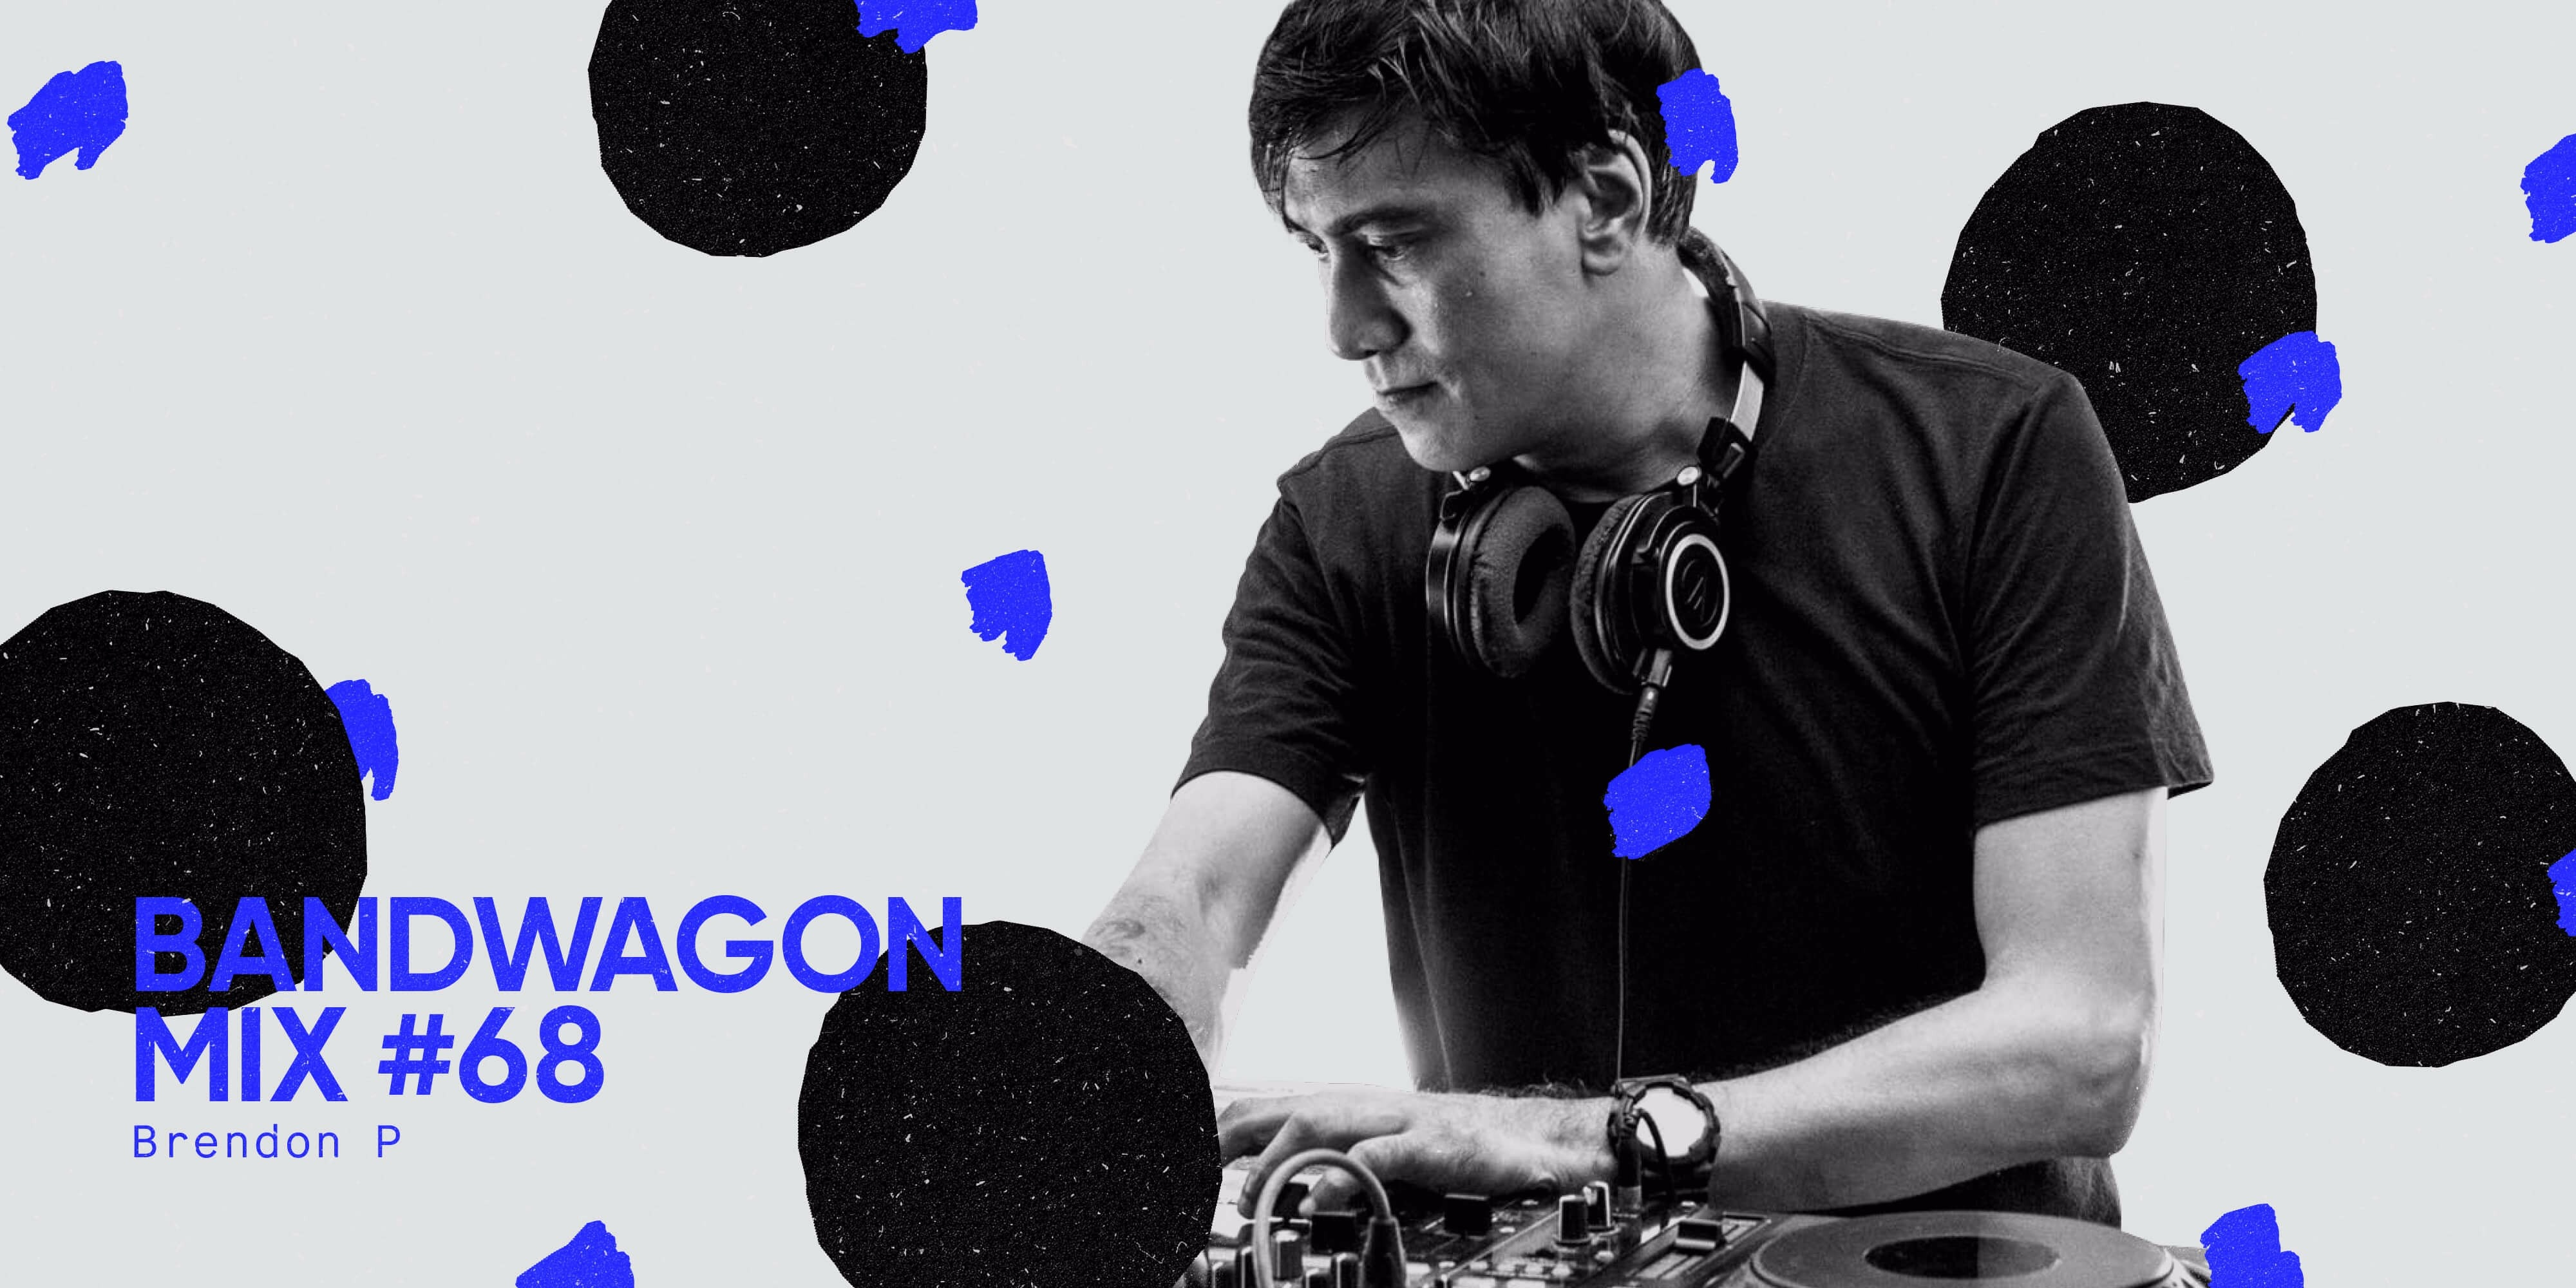 Bandwagon Mix #68: Brendon P